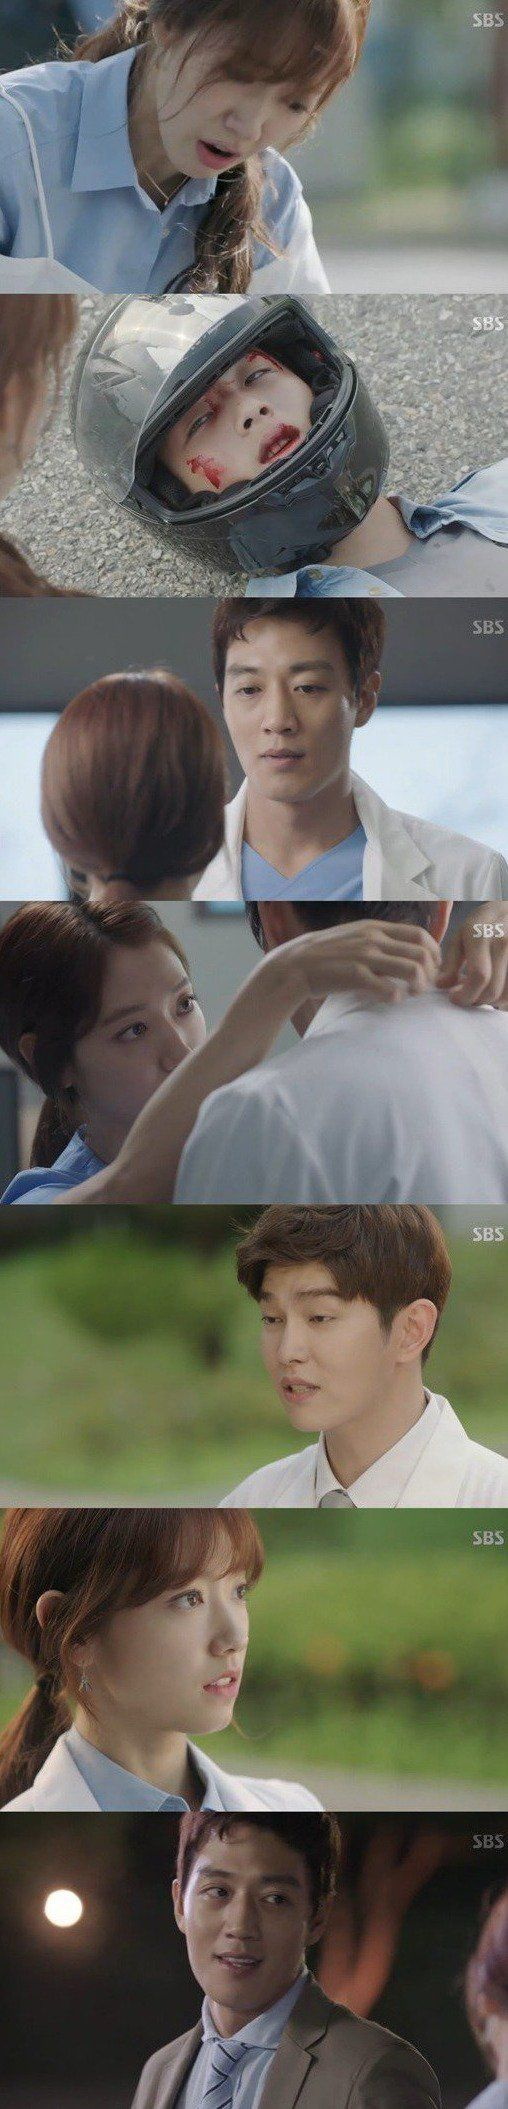 Spoiler Added Episode 8 Captures For The Korean Drama Doctors